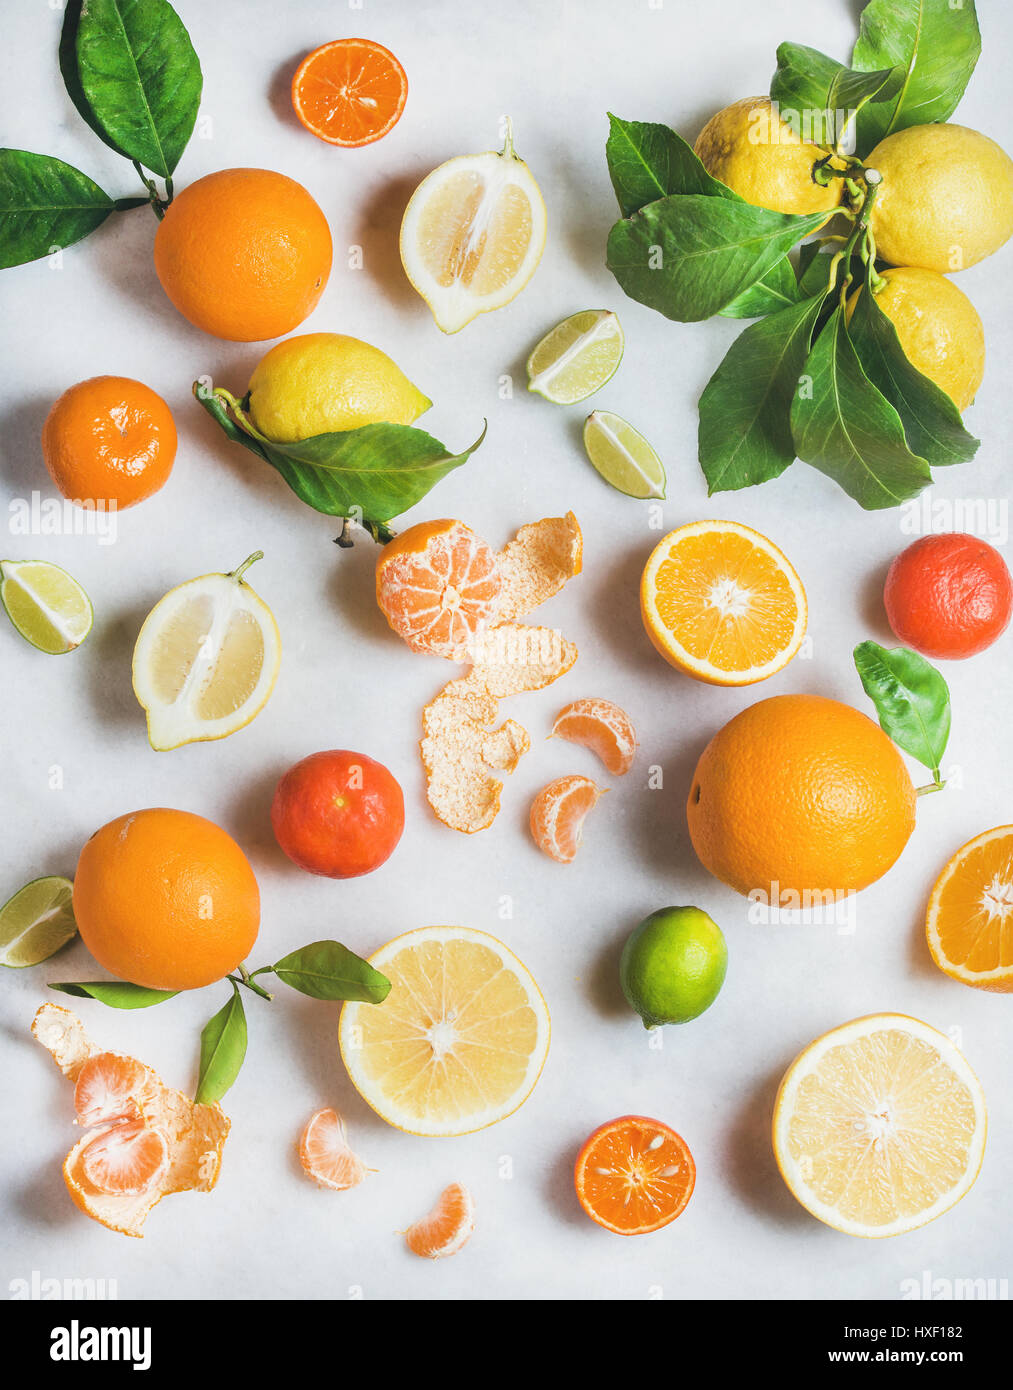 Variety of fresh citrus fruit for making healthy smoothie - Stock Image